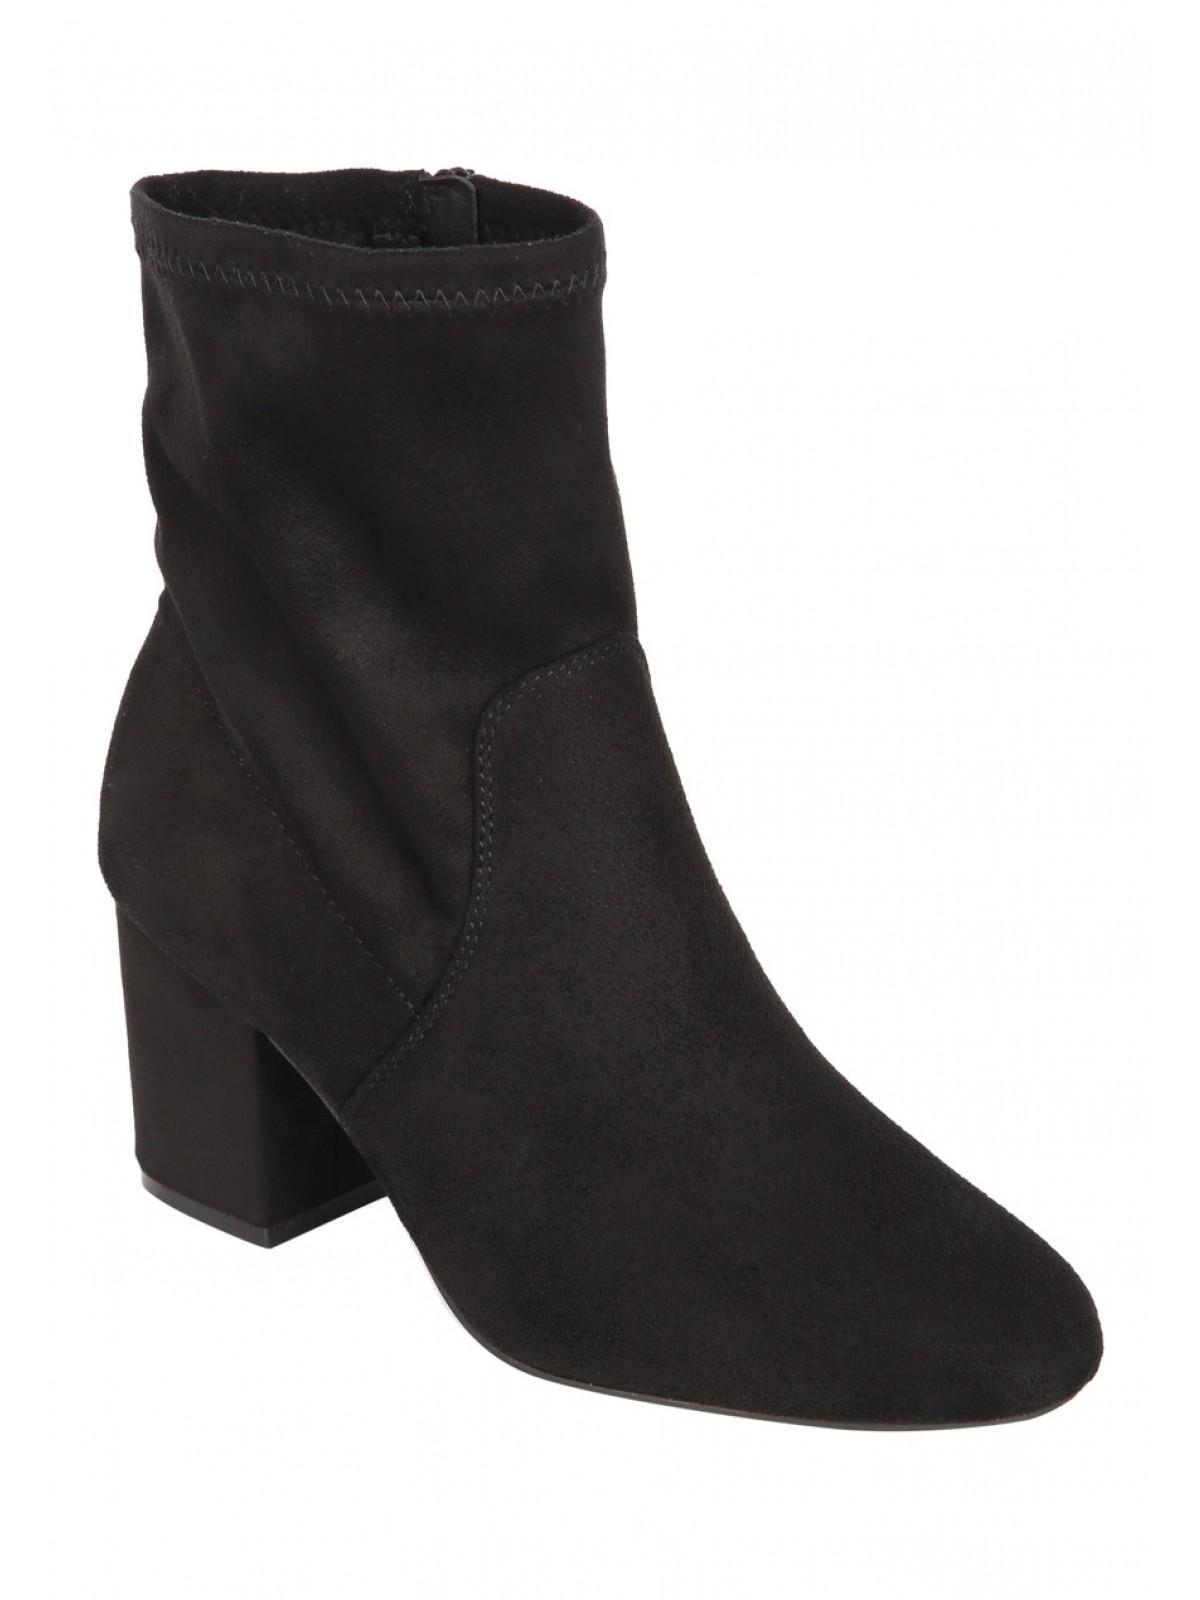 Women's Boots | Ankle & Knee High Boots | Peacocks